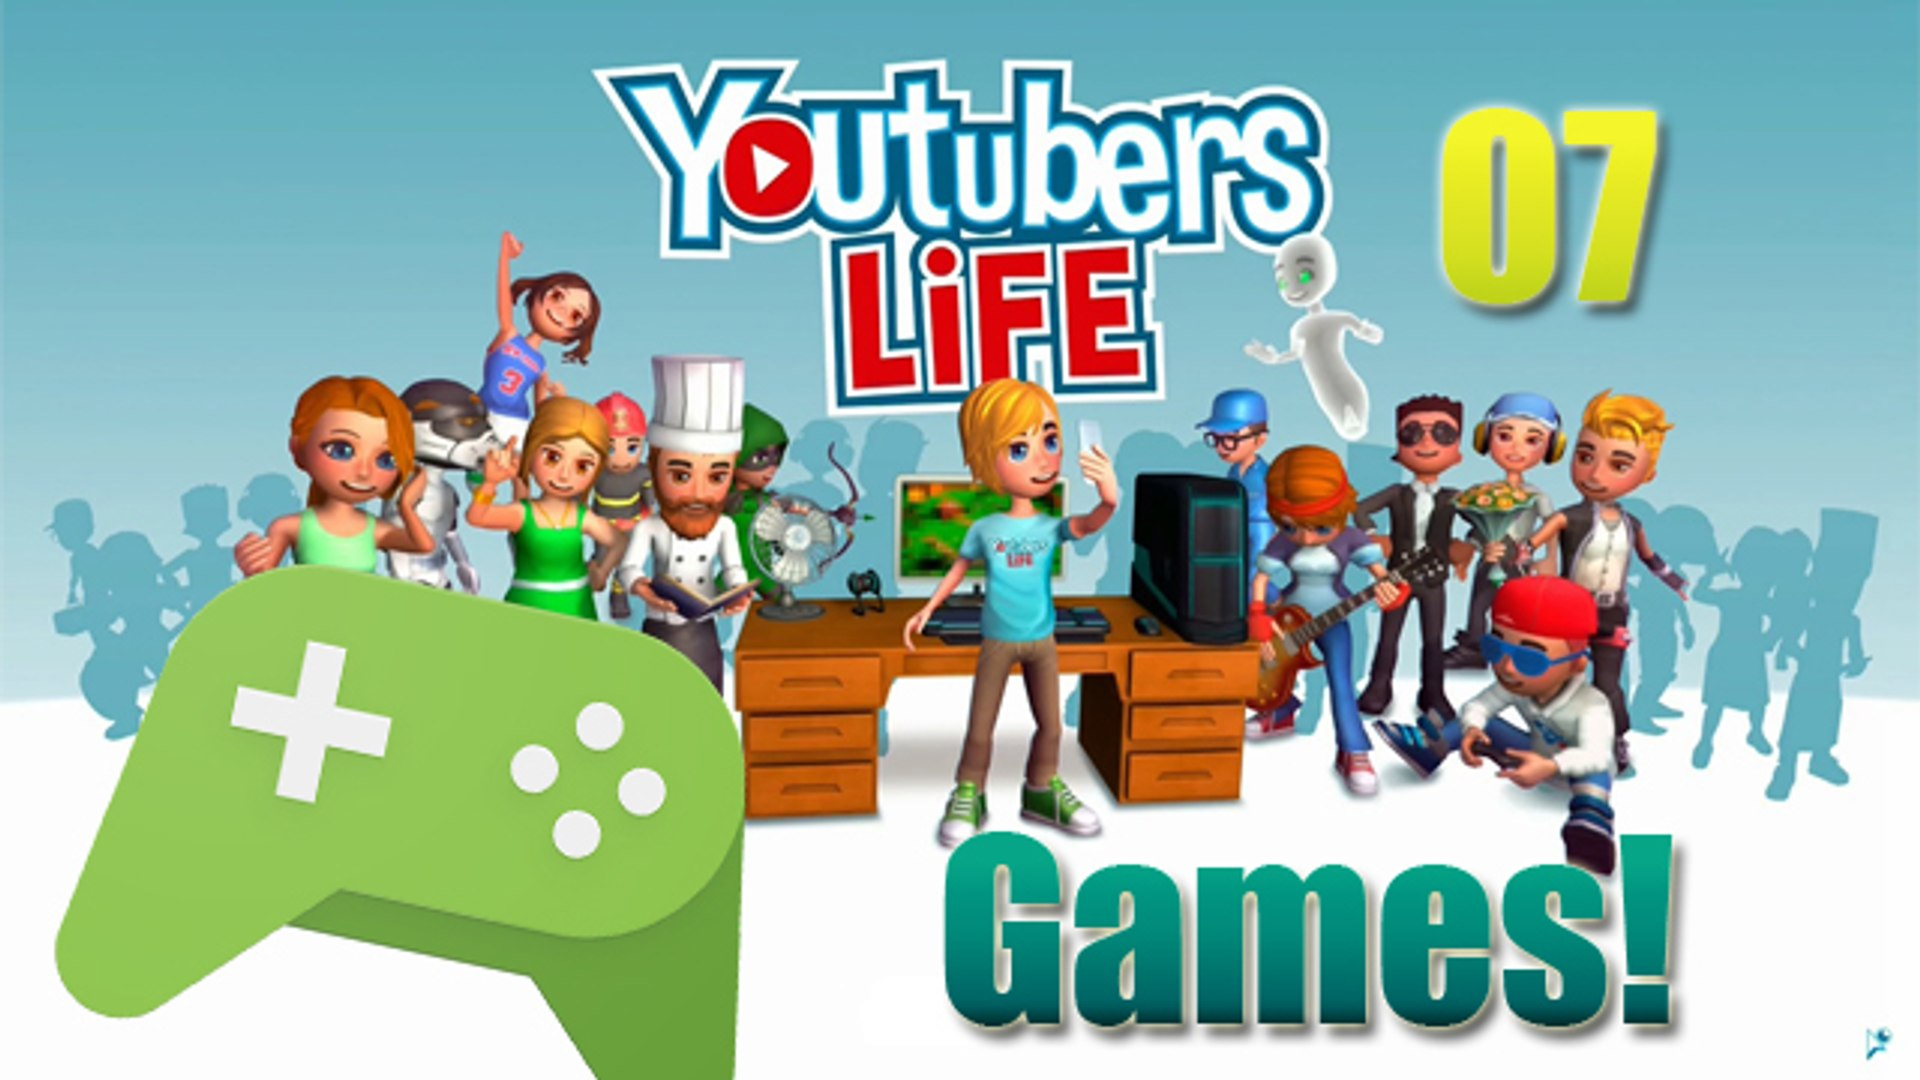 Youtubers Life #07 - Games, Games, Games!